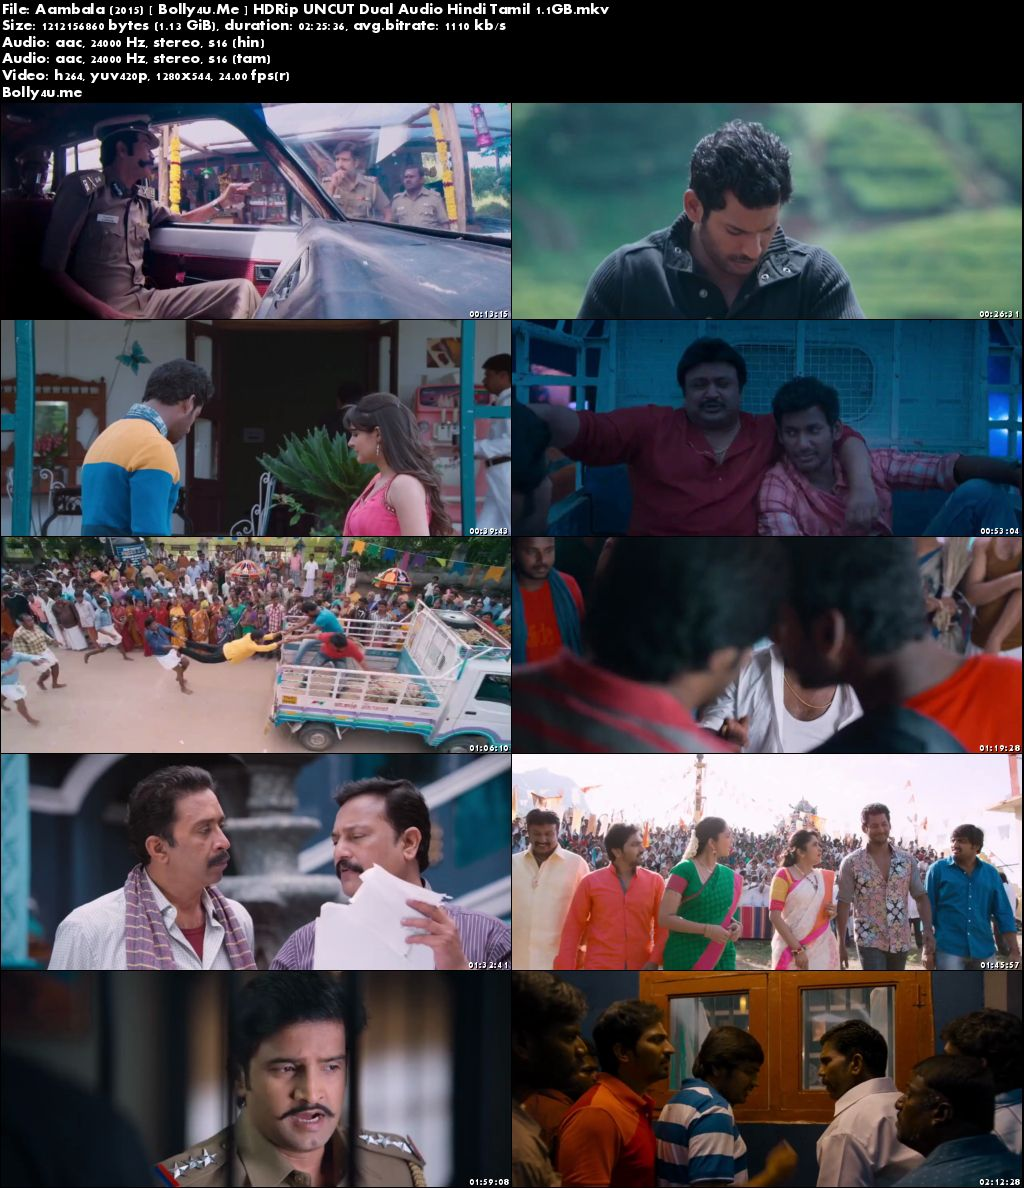 Aambala 2015 HDRip 450MB UNCUT Hindi Dual Audio 480p Download